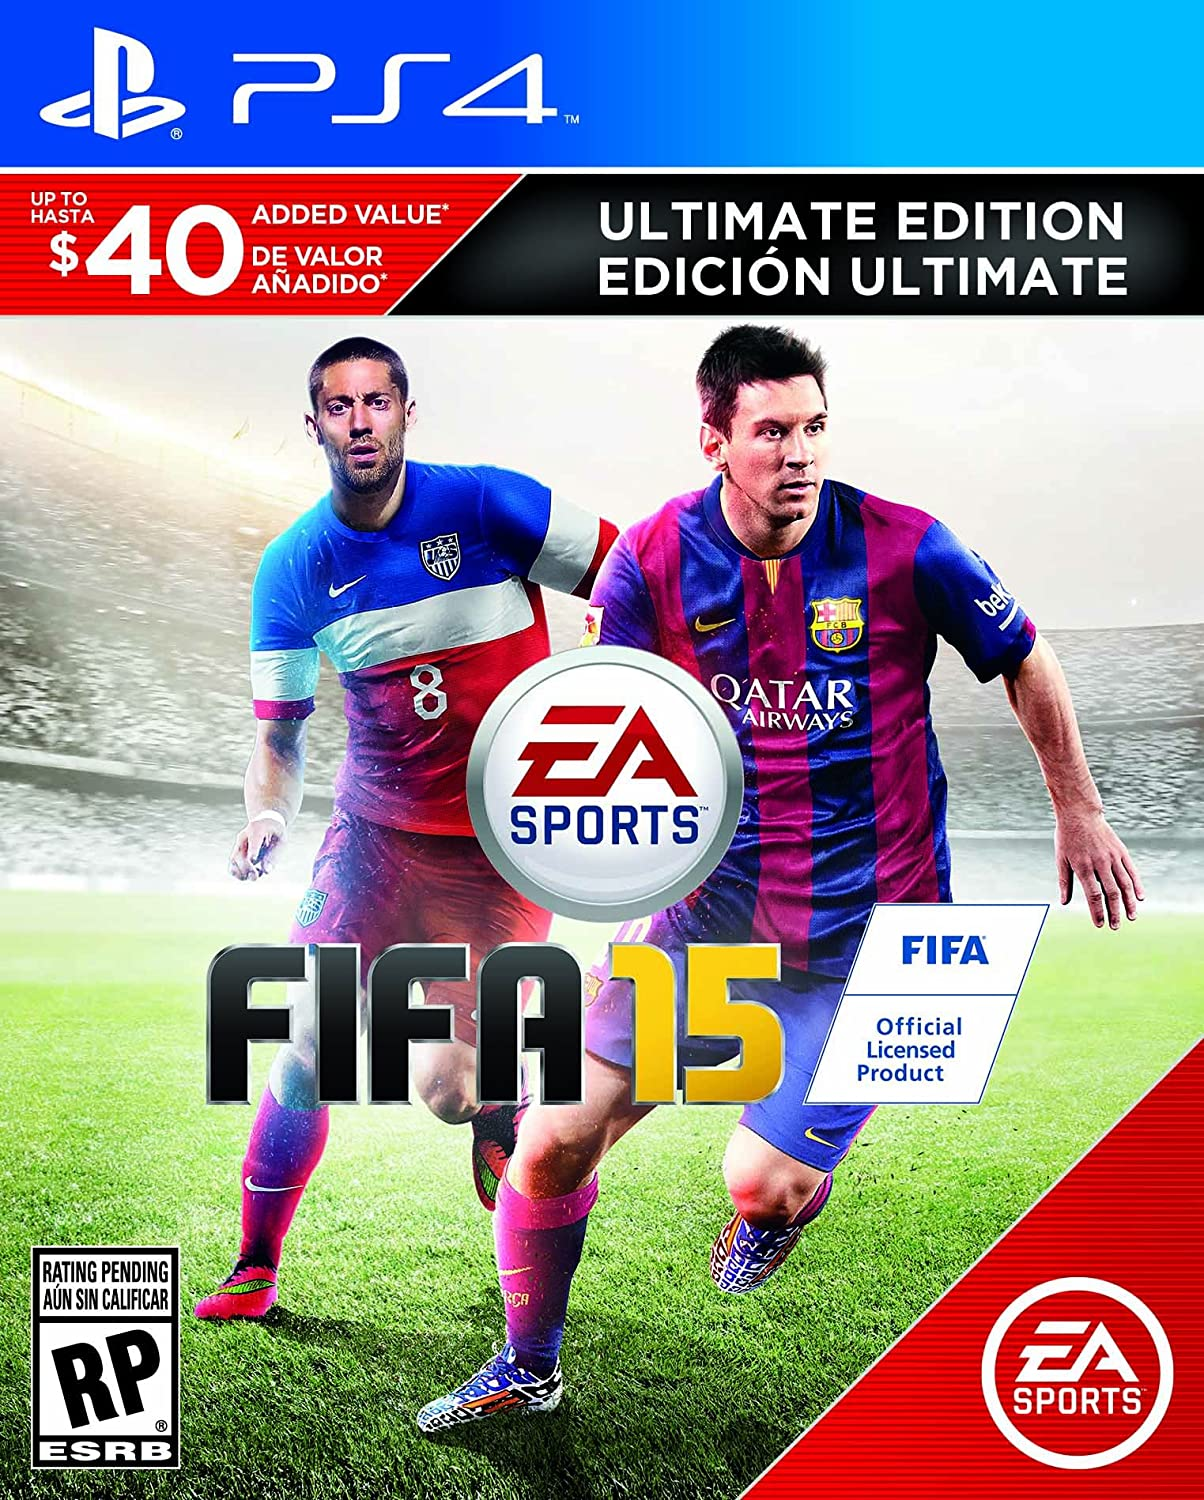 a2652845c Amazon.com  FIFA 15 (Ultimate Edition) - PlayStation 4  Video Games